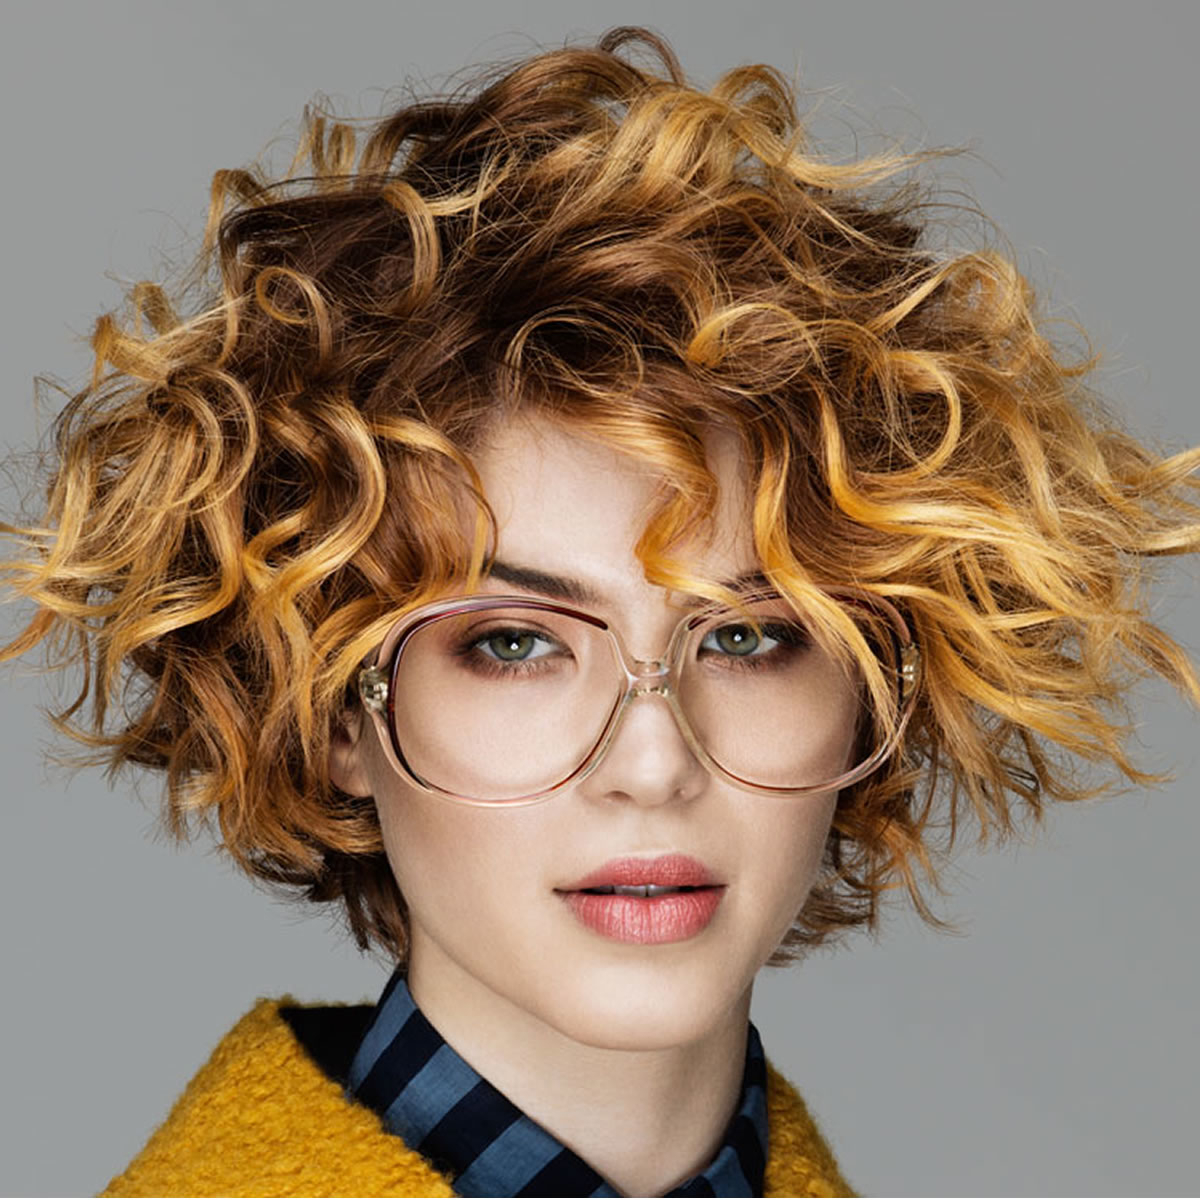 Short Curly Haircuts For Long Faces – Short And Cuts Hairstyles Pertaining To Curly Short Hairstyles For Oval Faces (View 6 of 25)